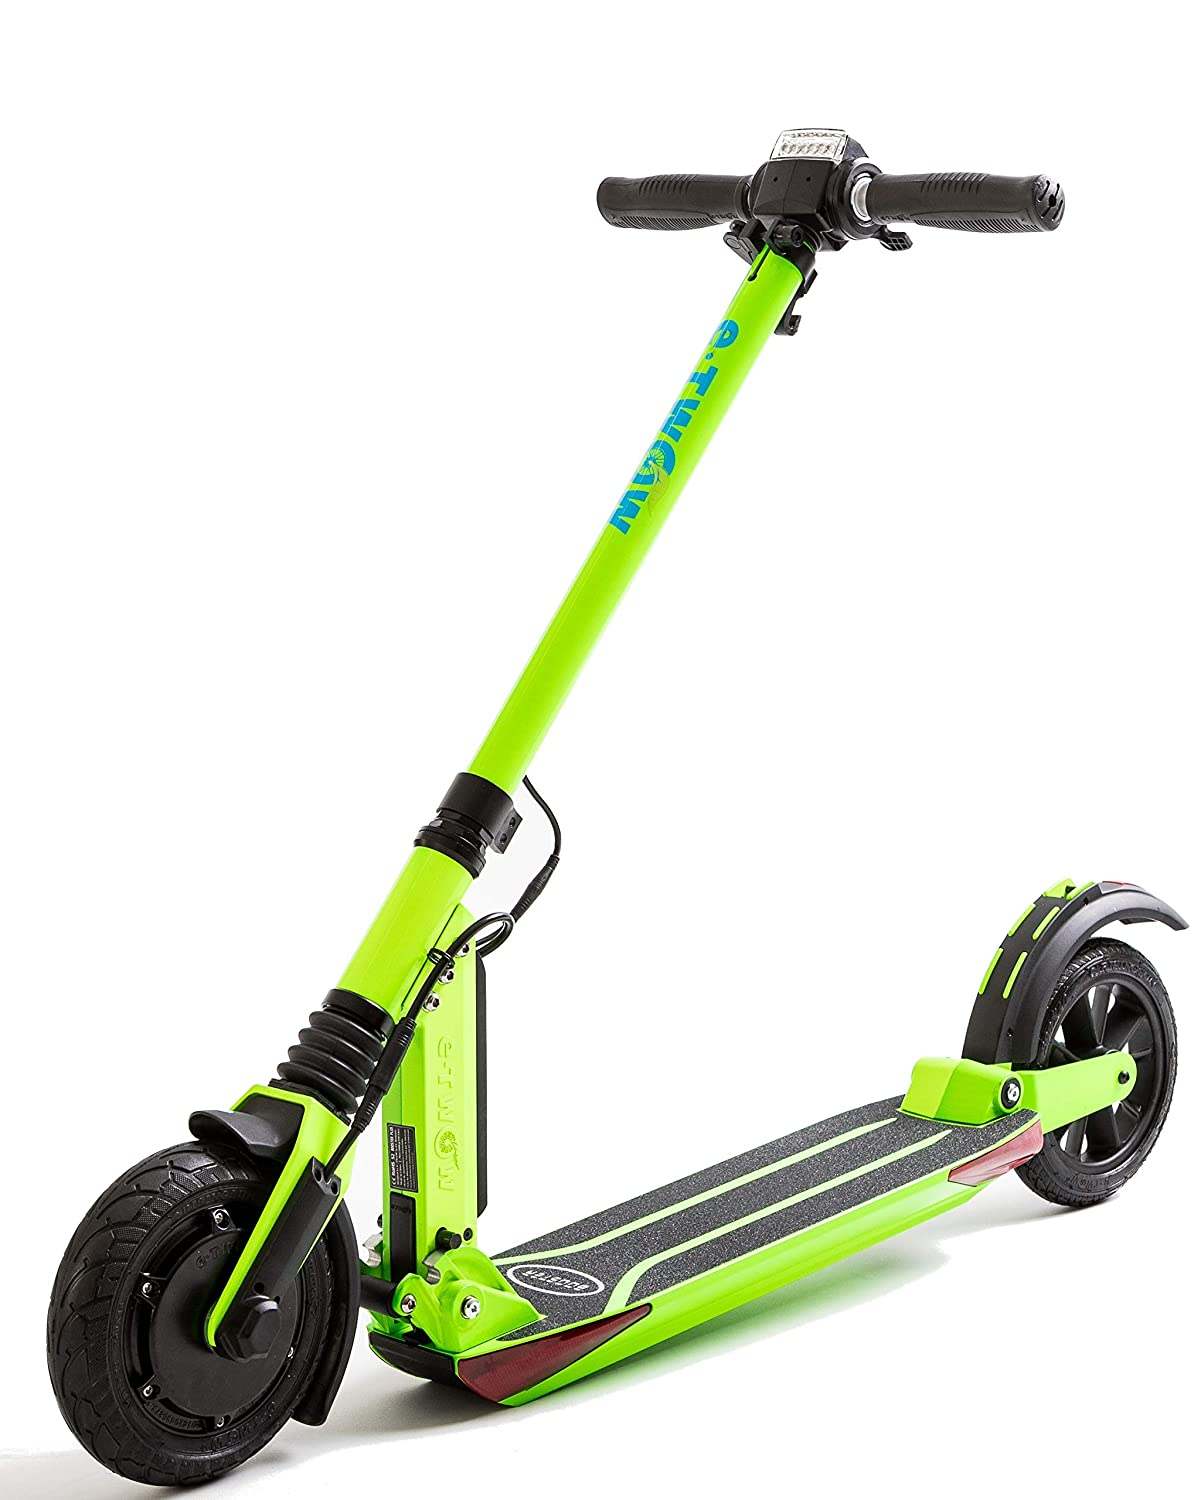 E-Twow S2 Booster S 36V 8,7Ah, Patinete eléctrico Verde ...